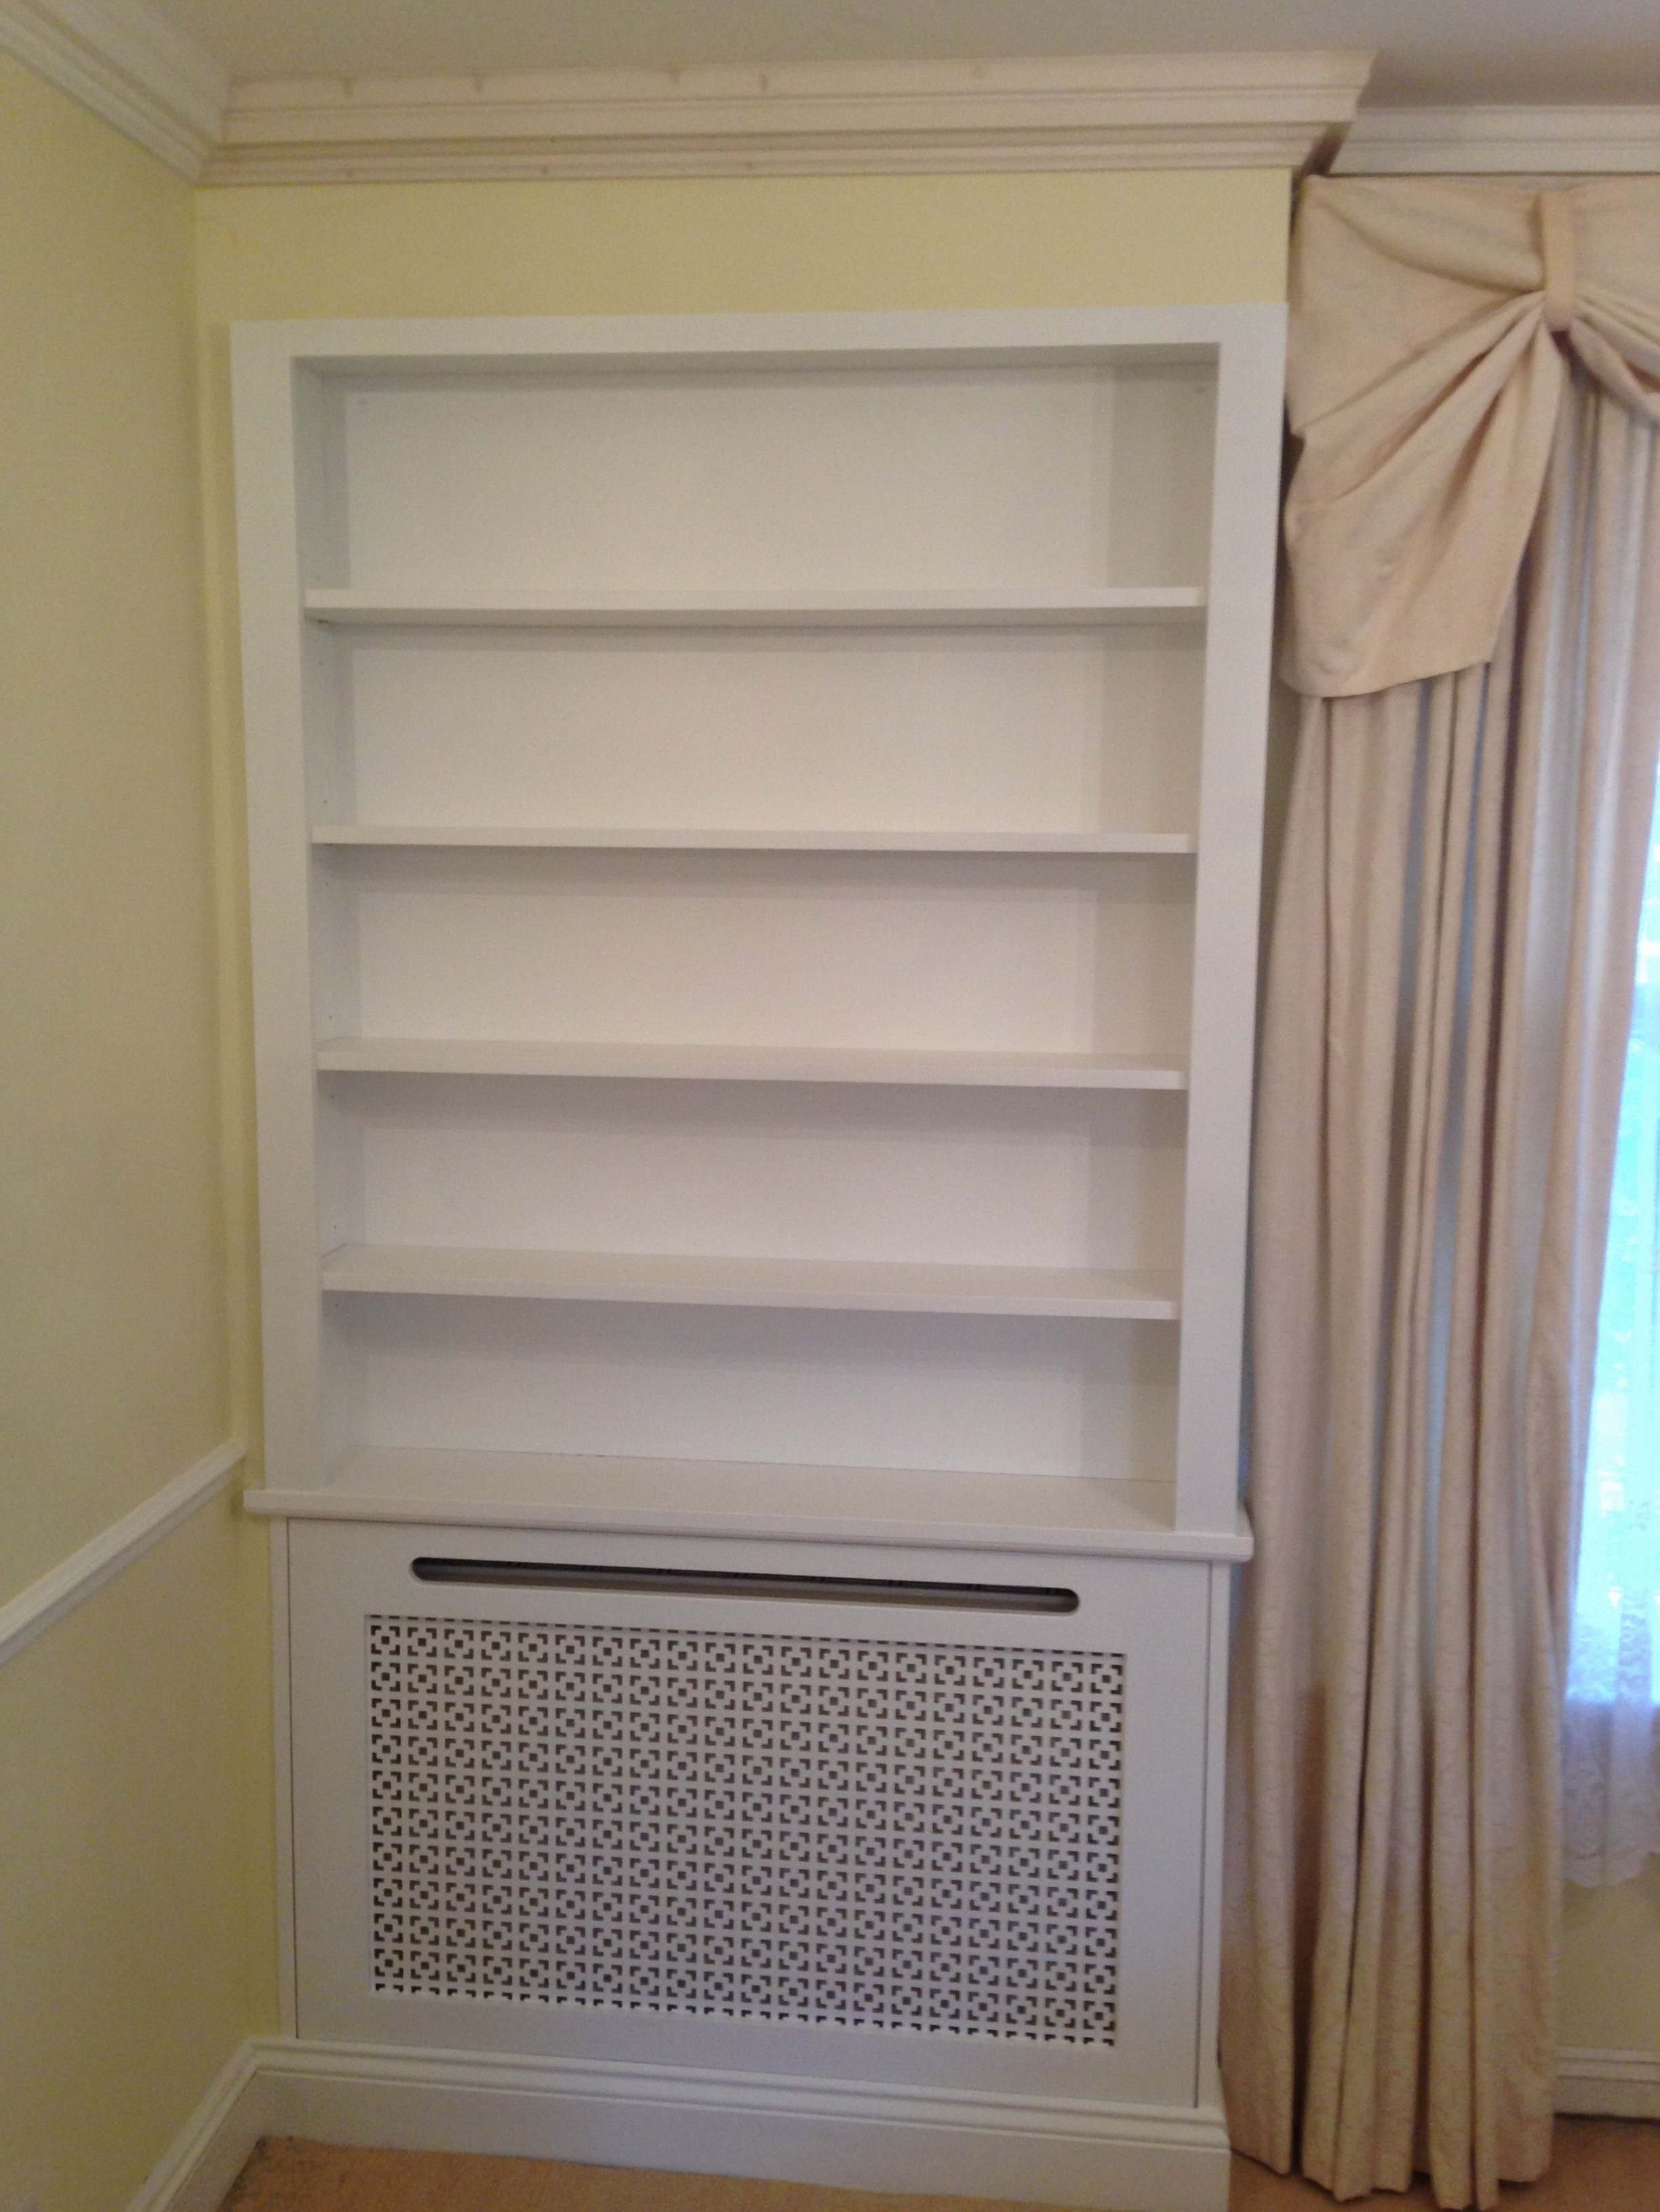 Most Current Radiator Cover Bookshelves With Radiator Cover Bookcase – Harrow Builders And Bespoke Joinery – Lj (View 4 of 15)